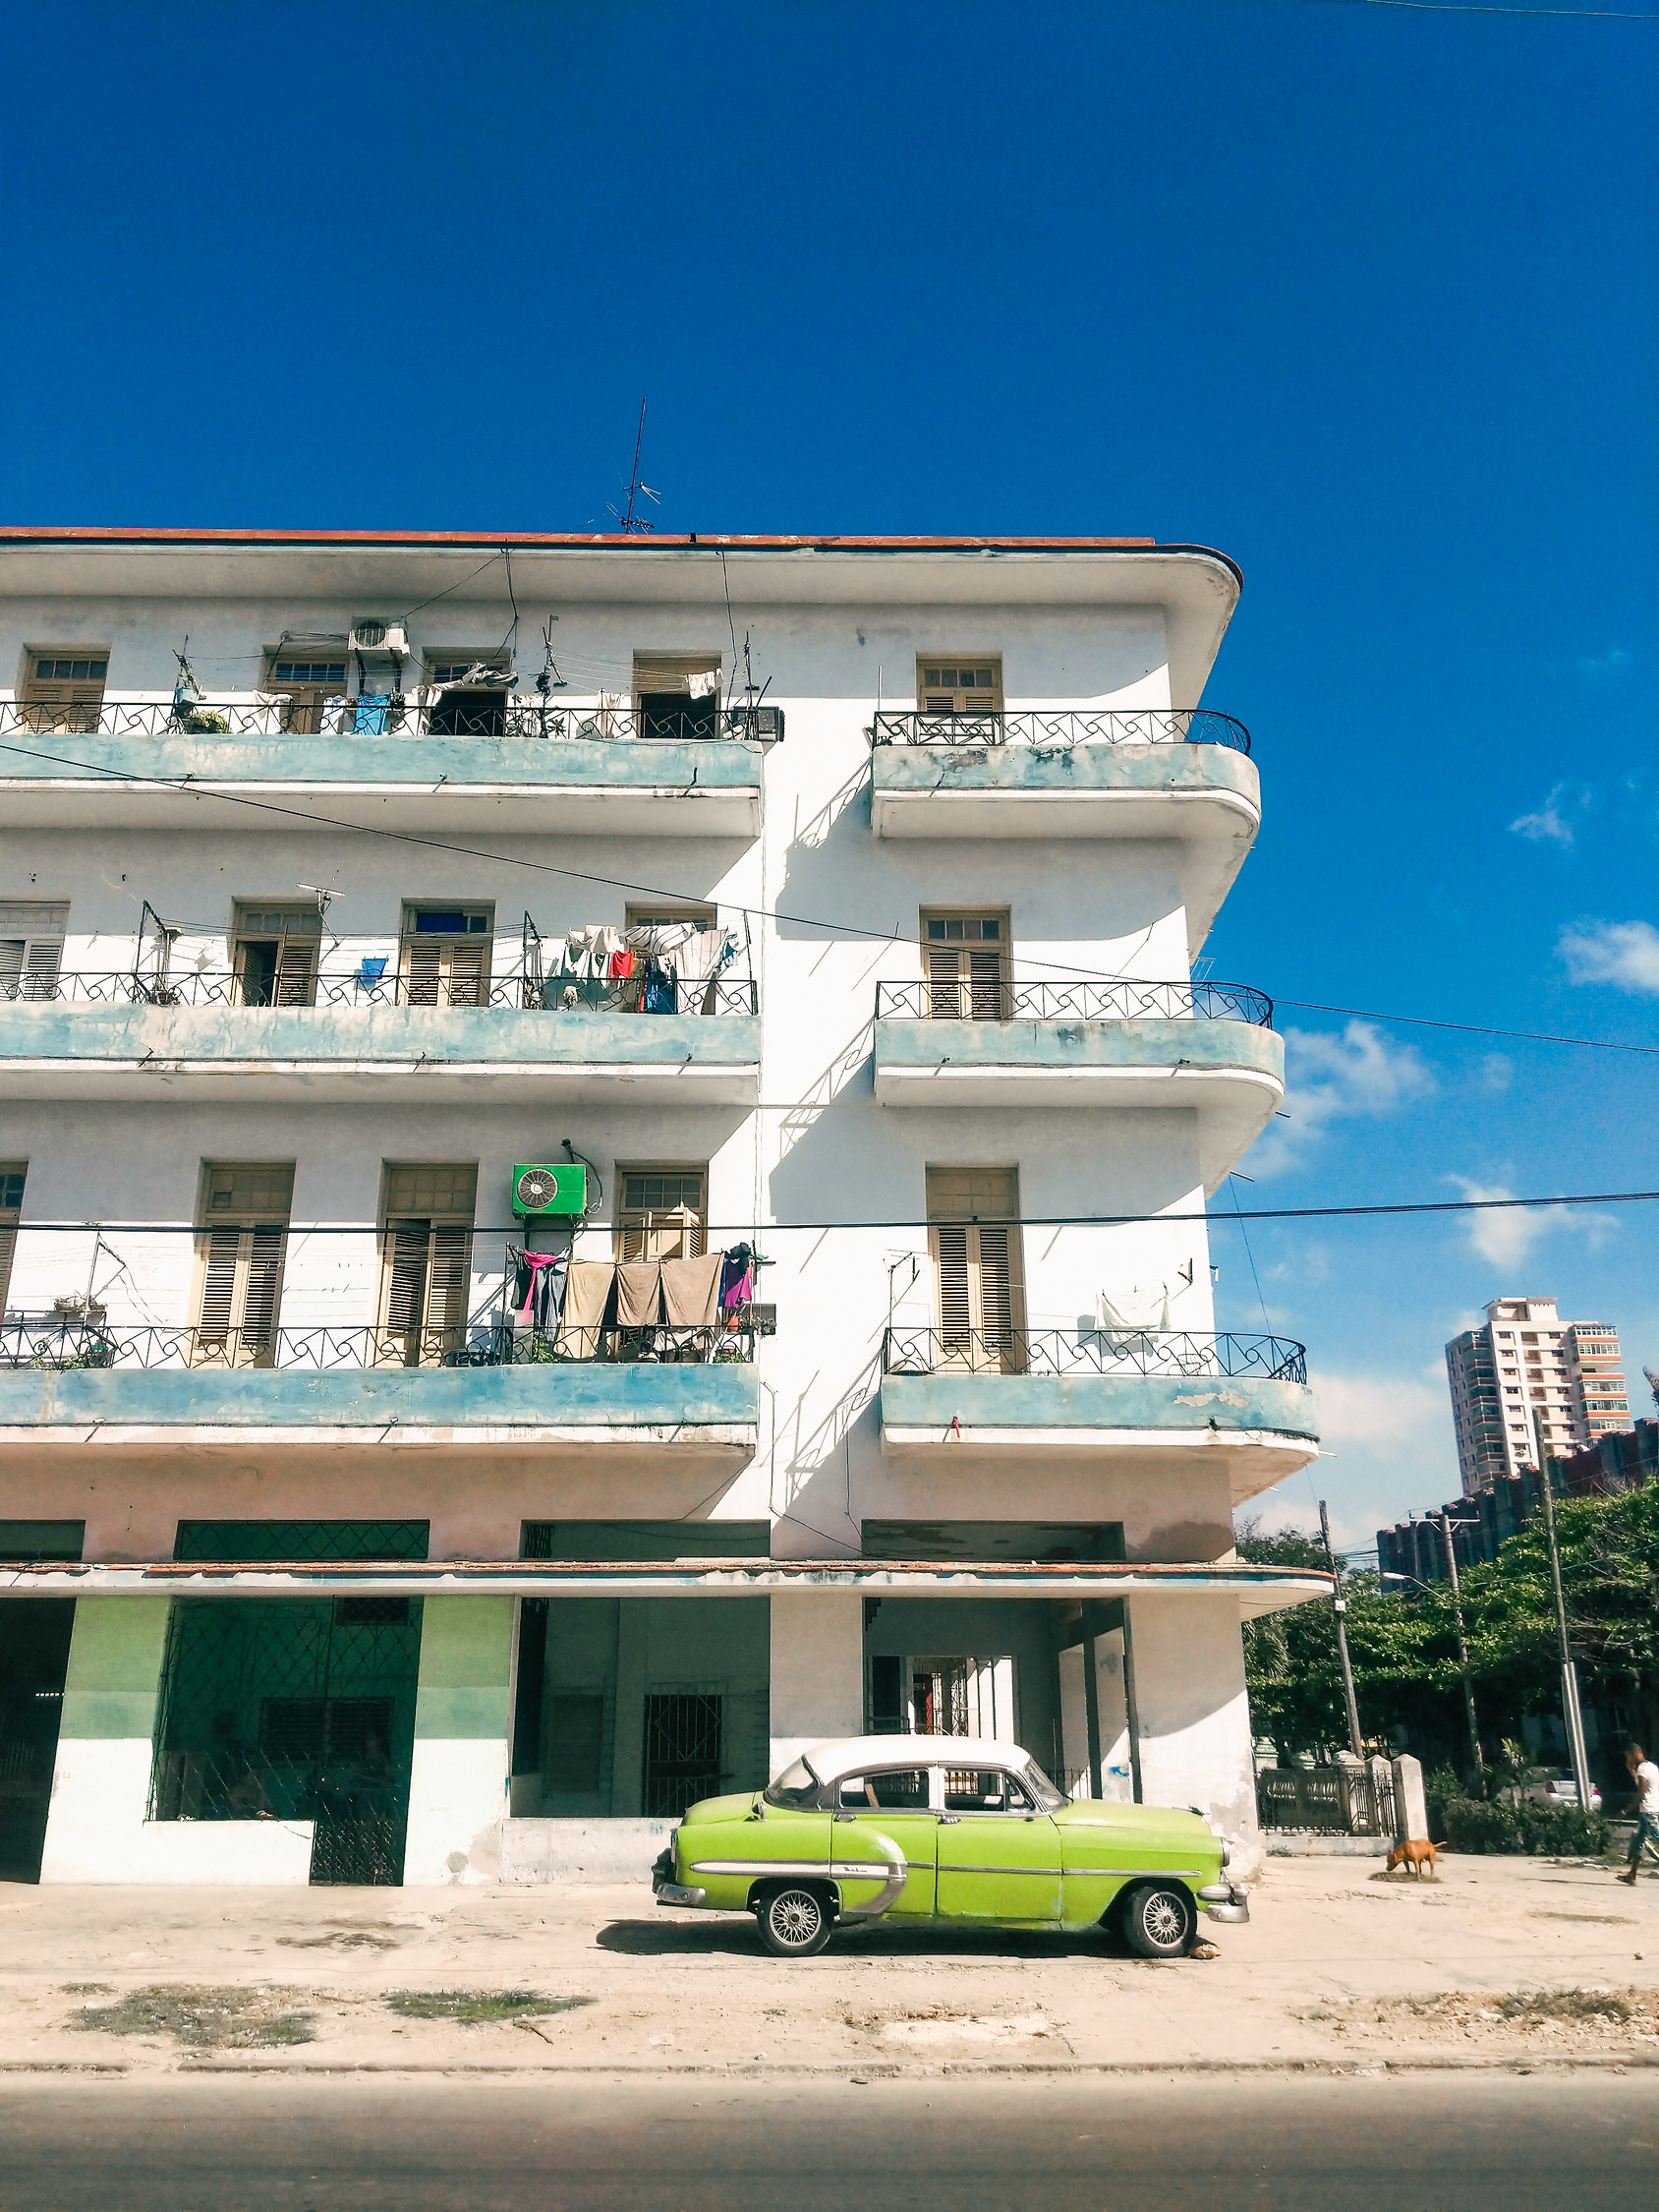 Antique green car outside building in Vedado Cuba